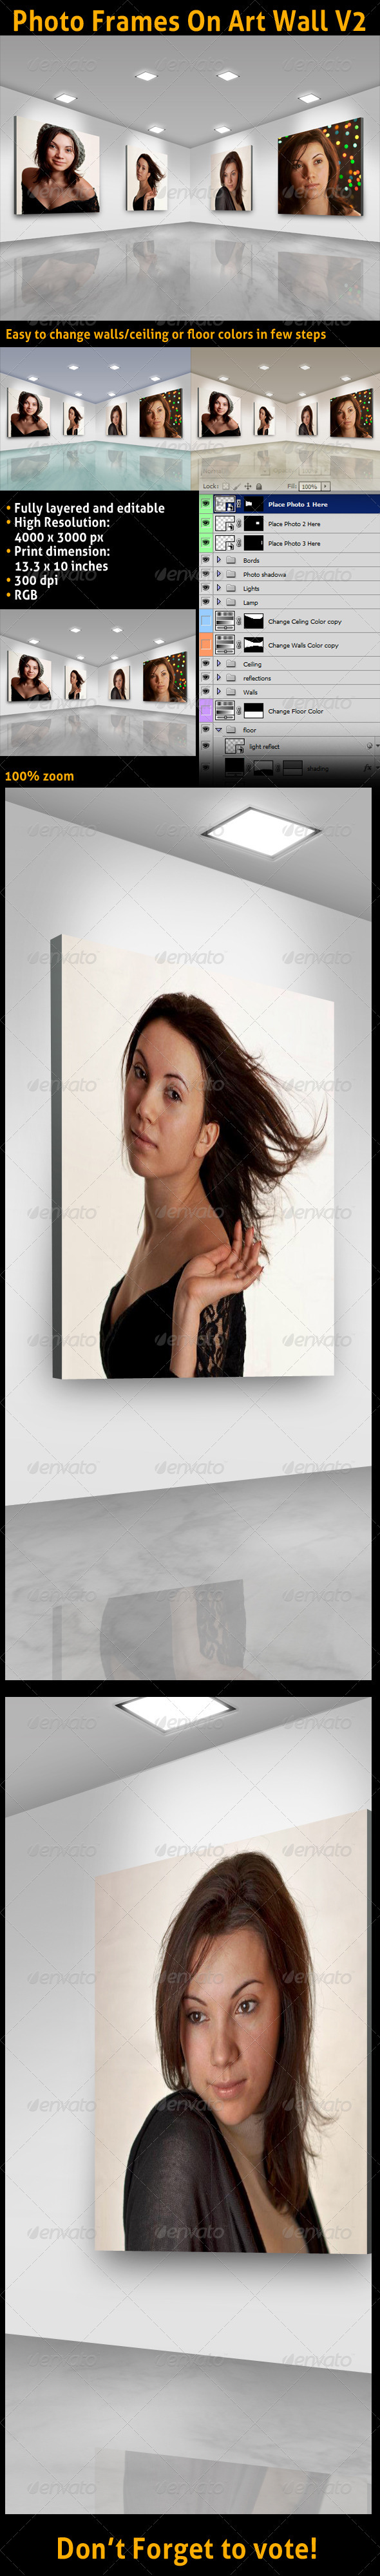 GraphicRiver Photo Frames On Art Wall V2 3396412